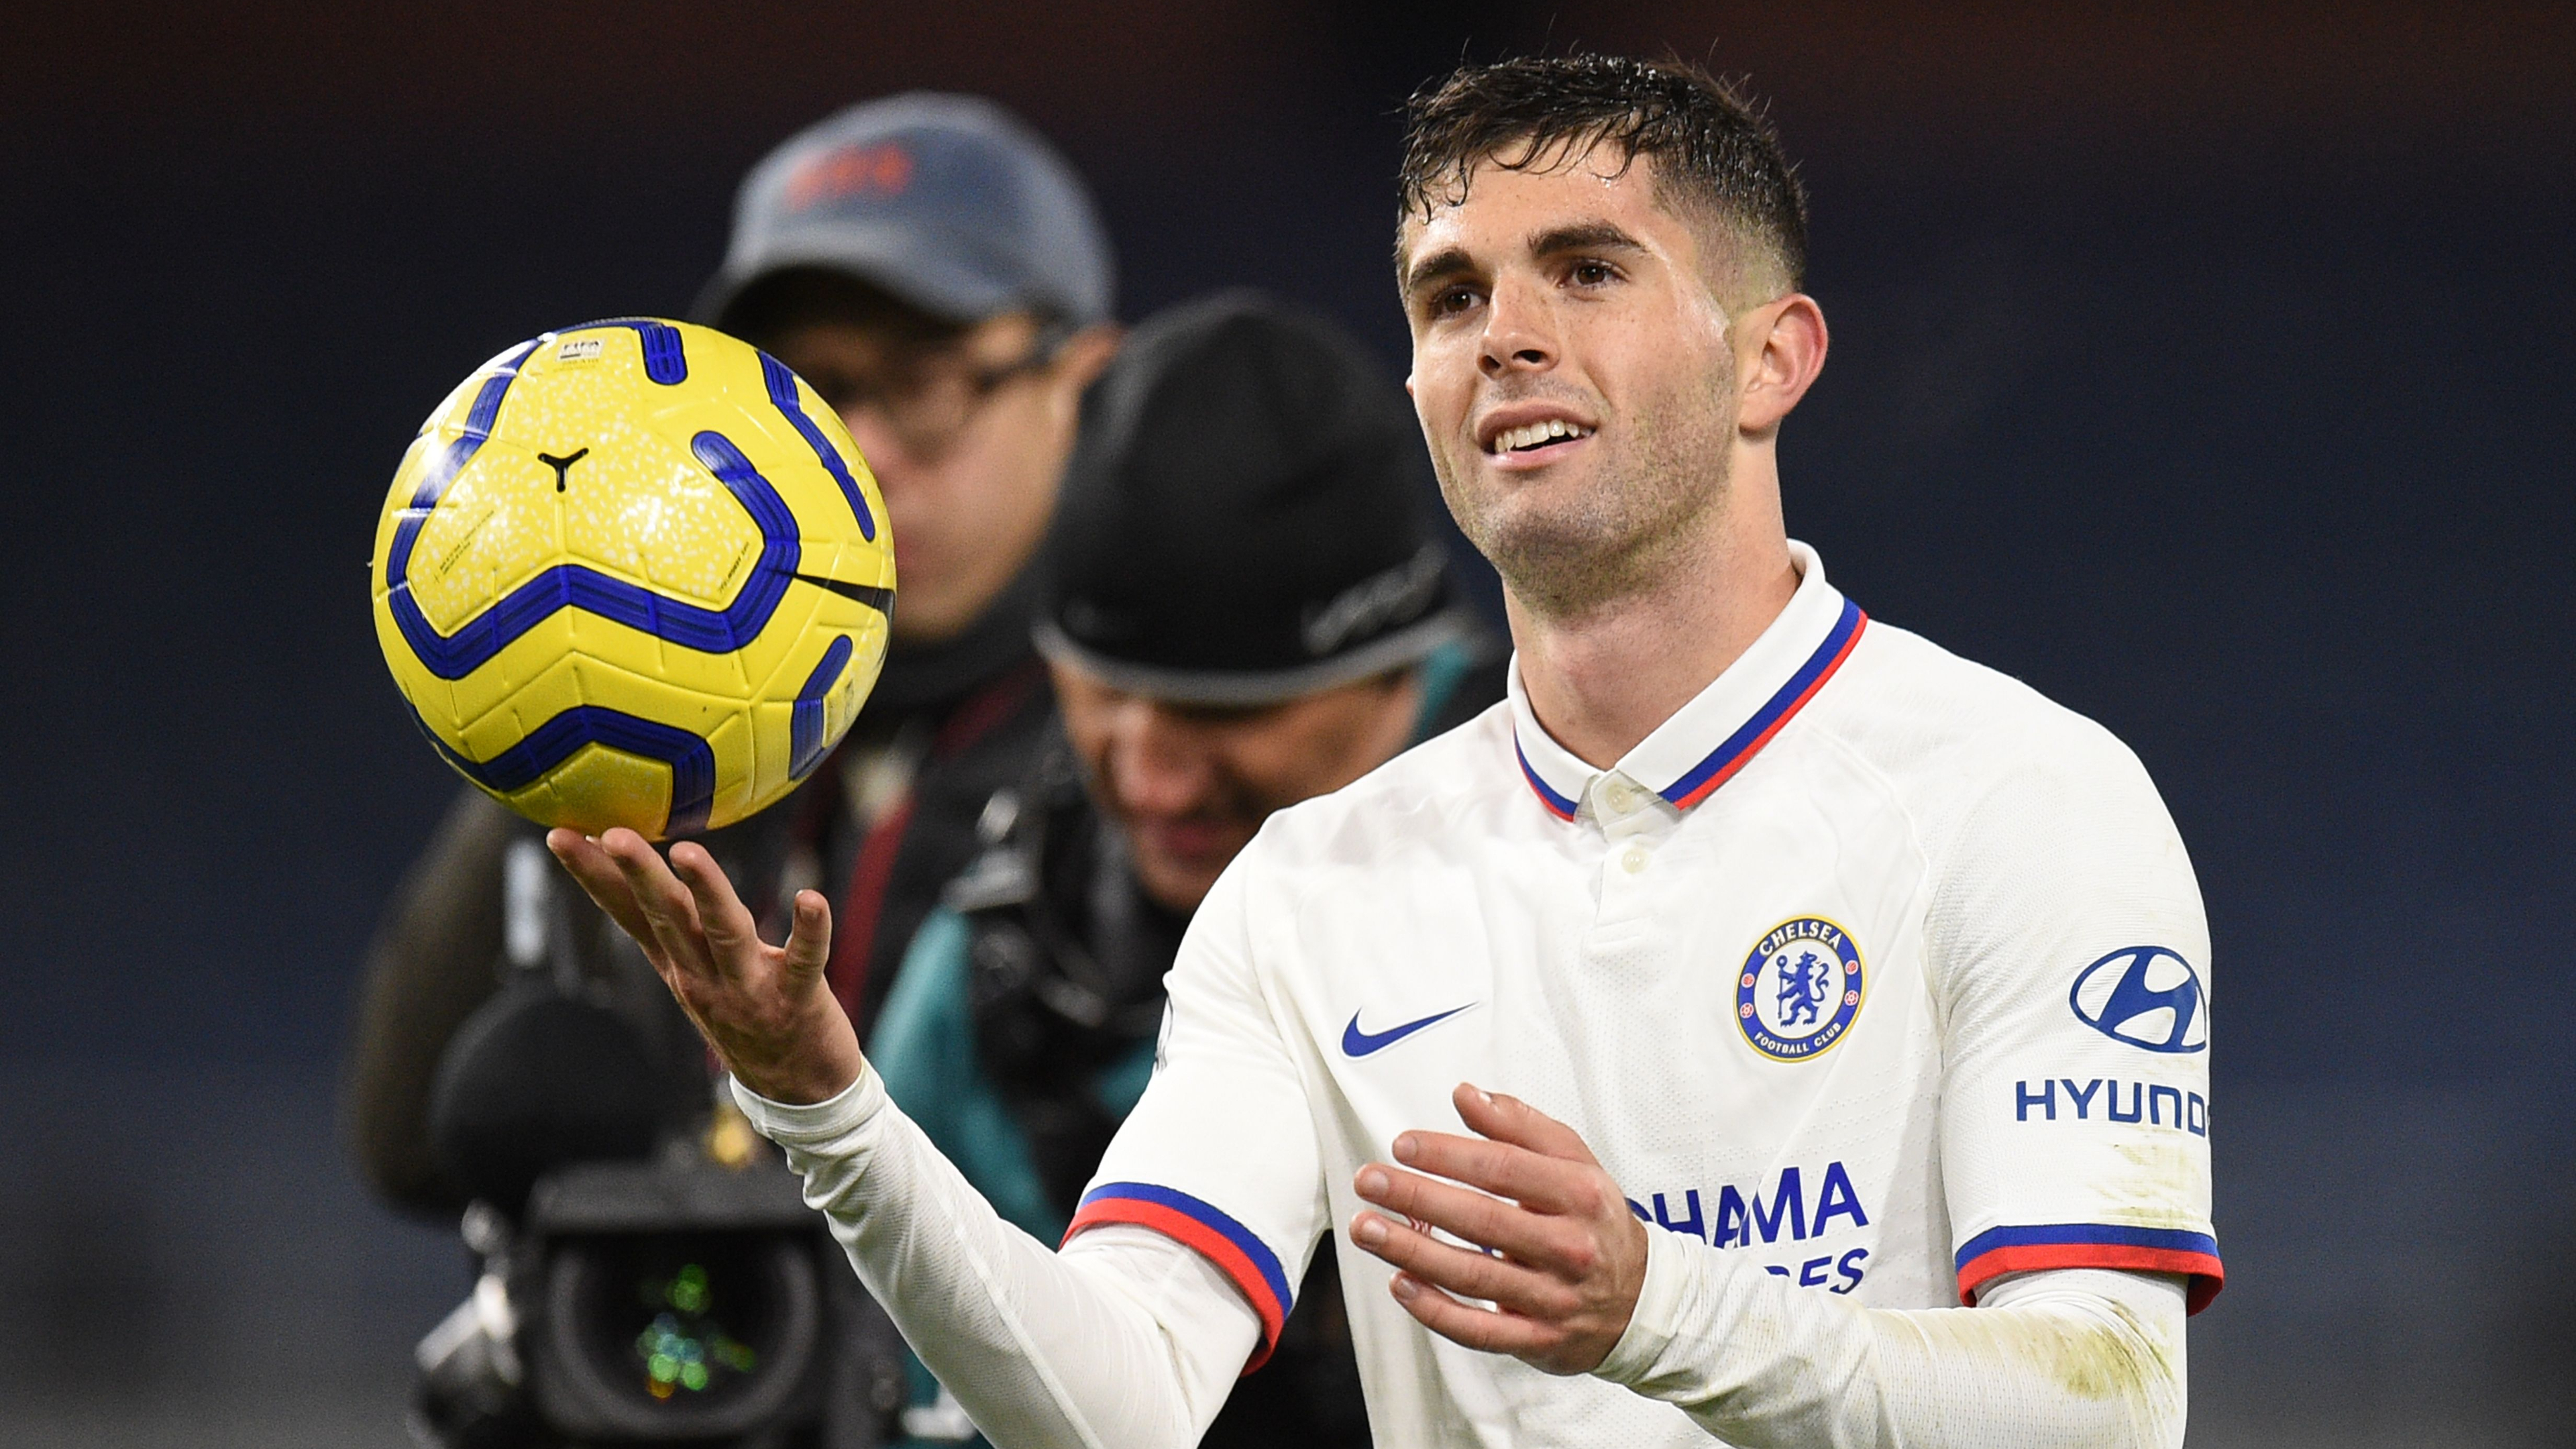 Pulisic: I never expected to come in and score 10 goals in my first game for Chelsea